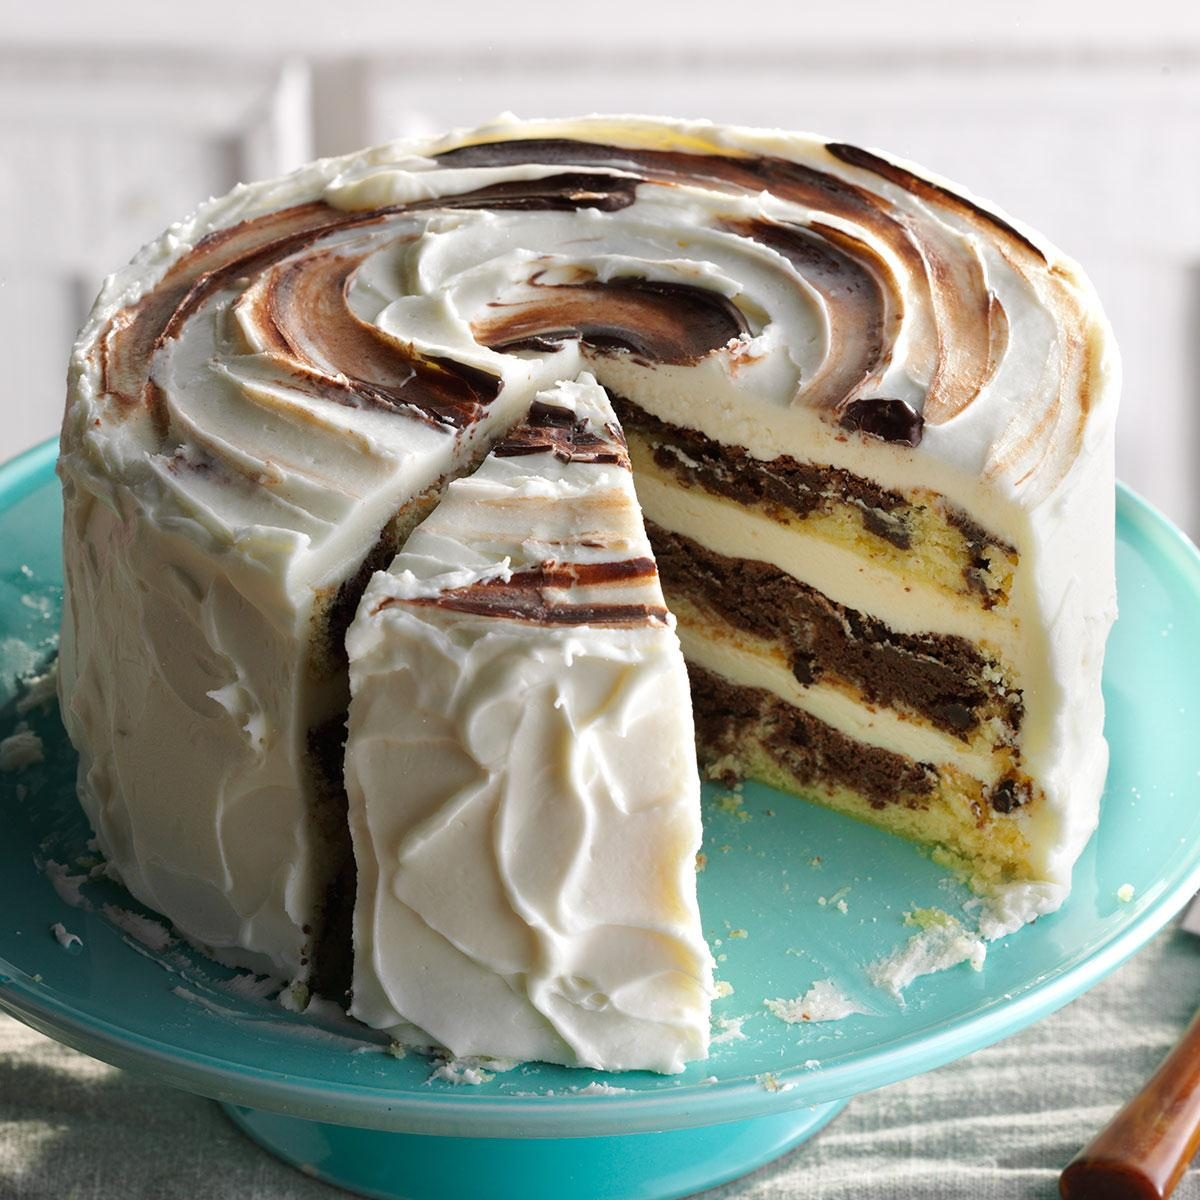 Marvelous Marble Cake Recipe Taste of Home